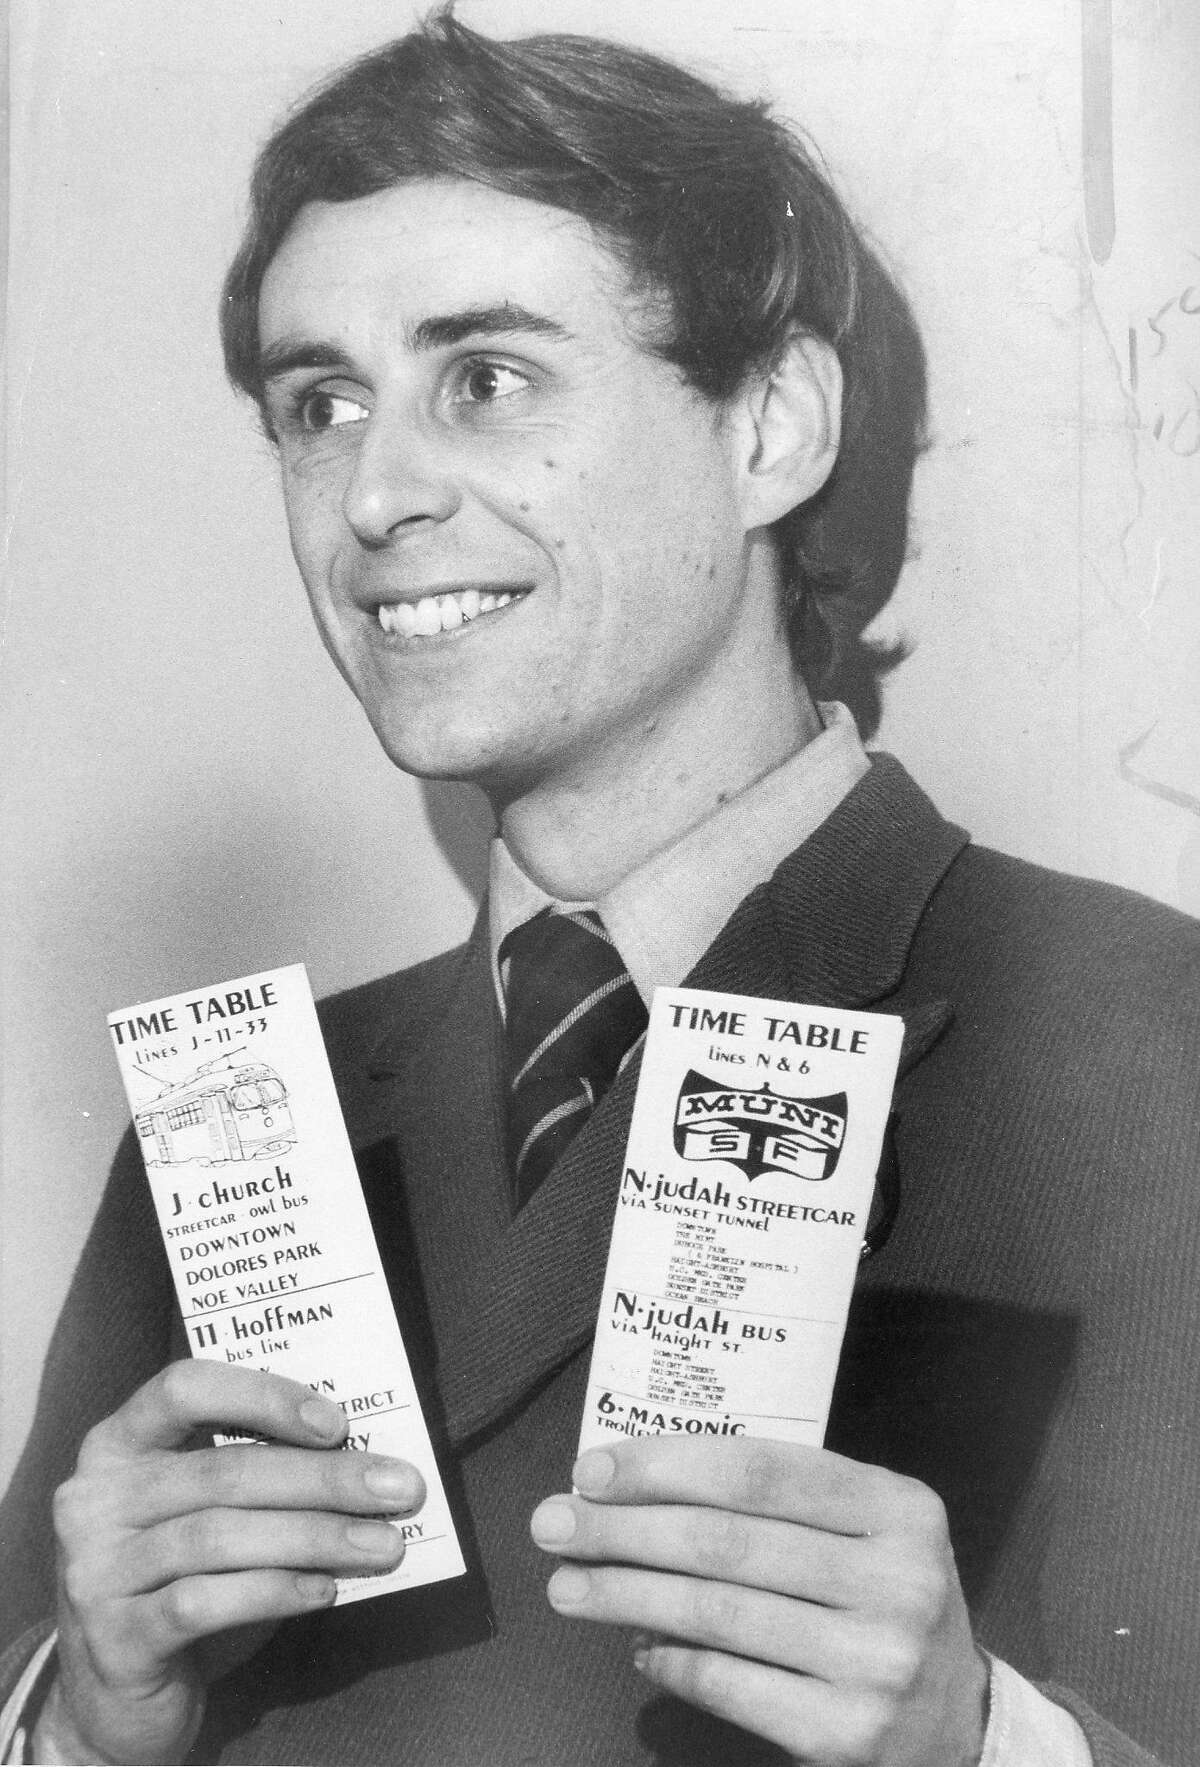 Muni driver Richard Morley shows off his self-printed Muni streetcar and bus schedules in August 1973.